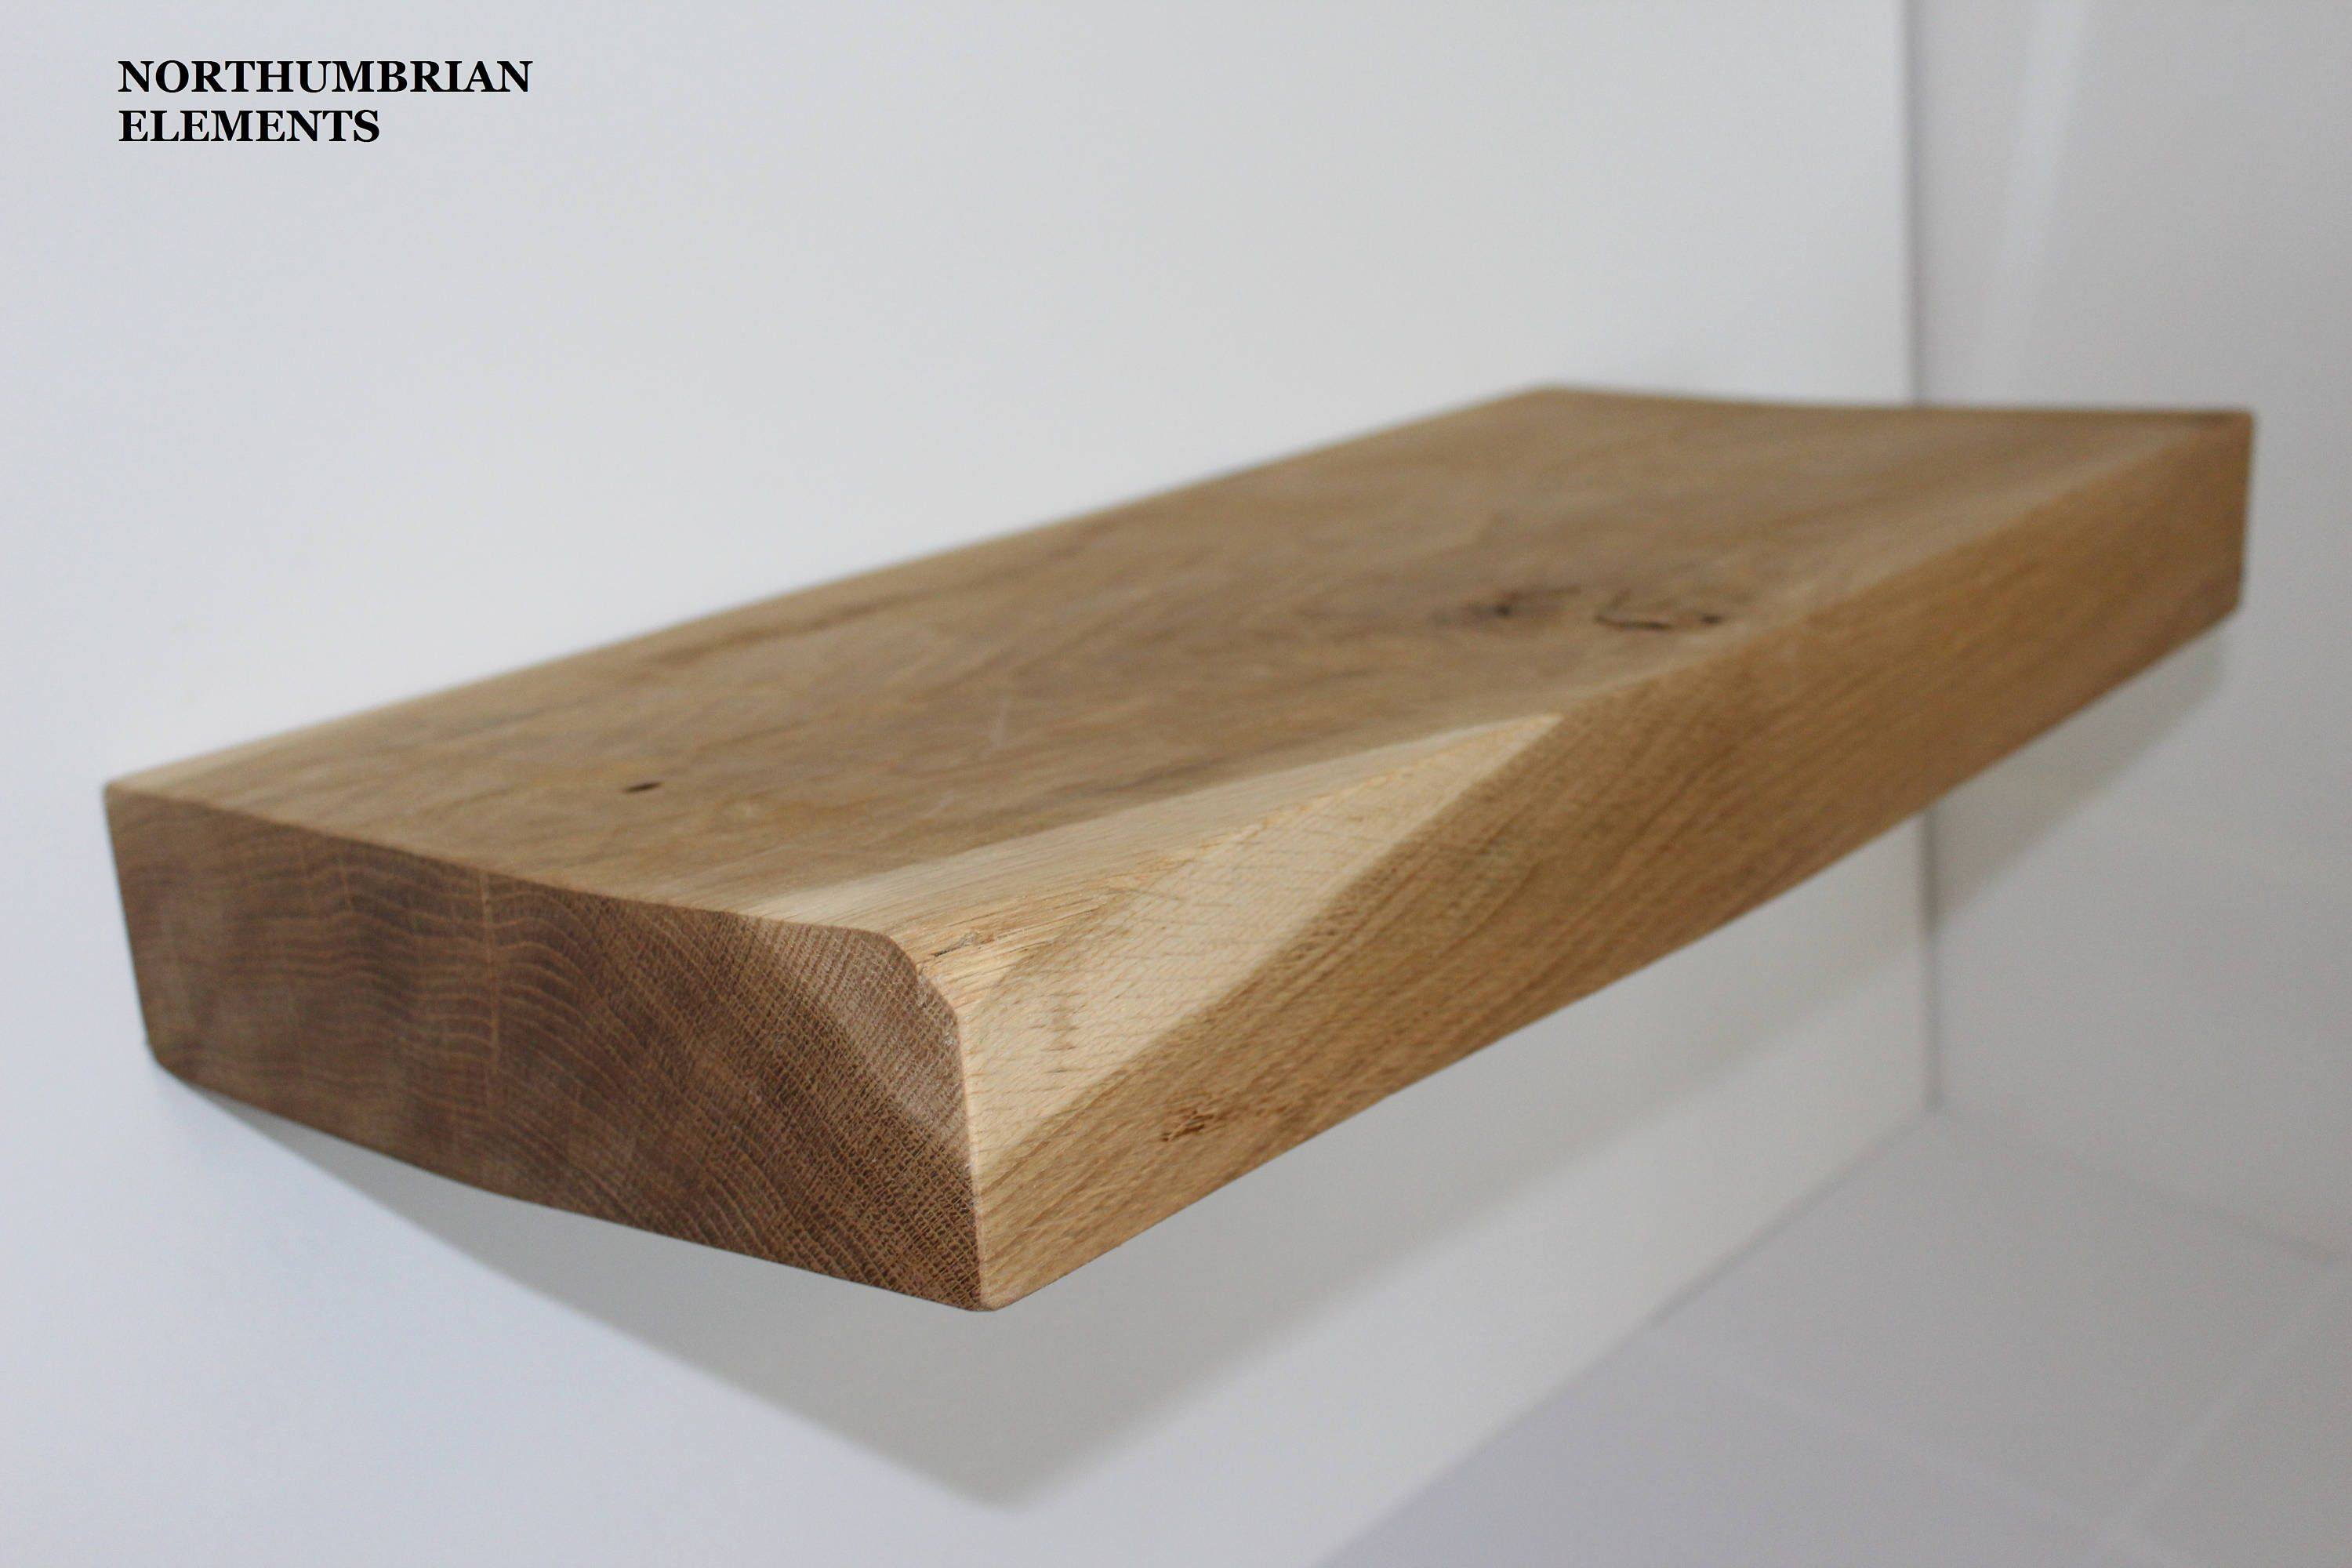 handcrafted rustic reclaimed solid oak floating shelf shelves brackets inch northumbrianelements etsy diy ikea peg coat rack shoe wall mounted desk fold build bra square glass